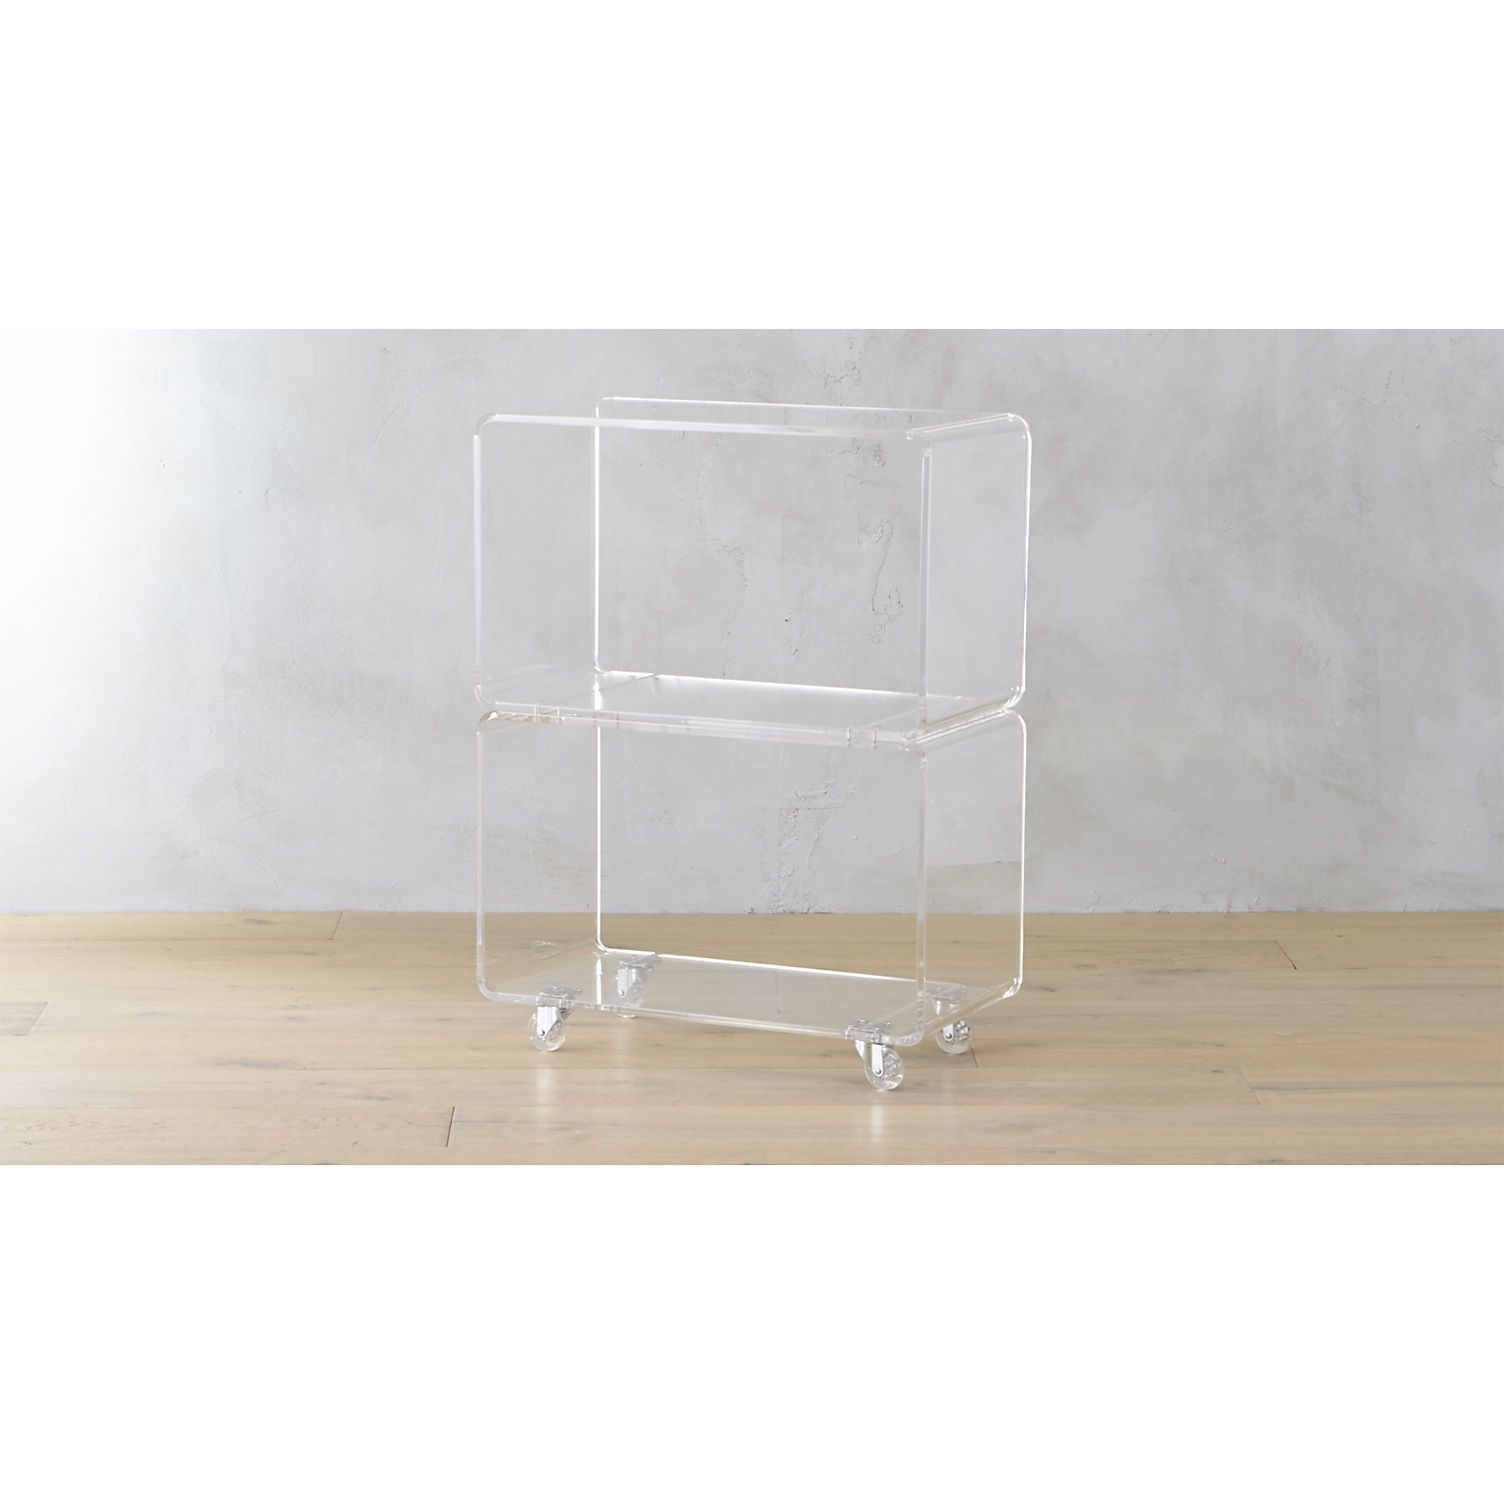 Peekaboo Acrylic Rolling Two Shelf | Shelves, Modern Coffee Tables pertaining to Peekaboo Acrylic Coffee Tables (Image 25 of 30)